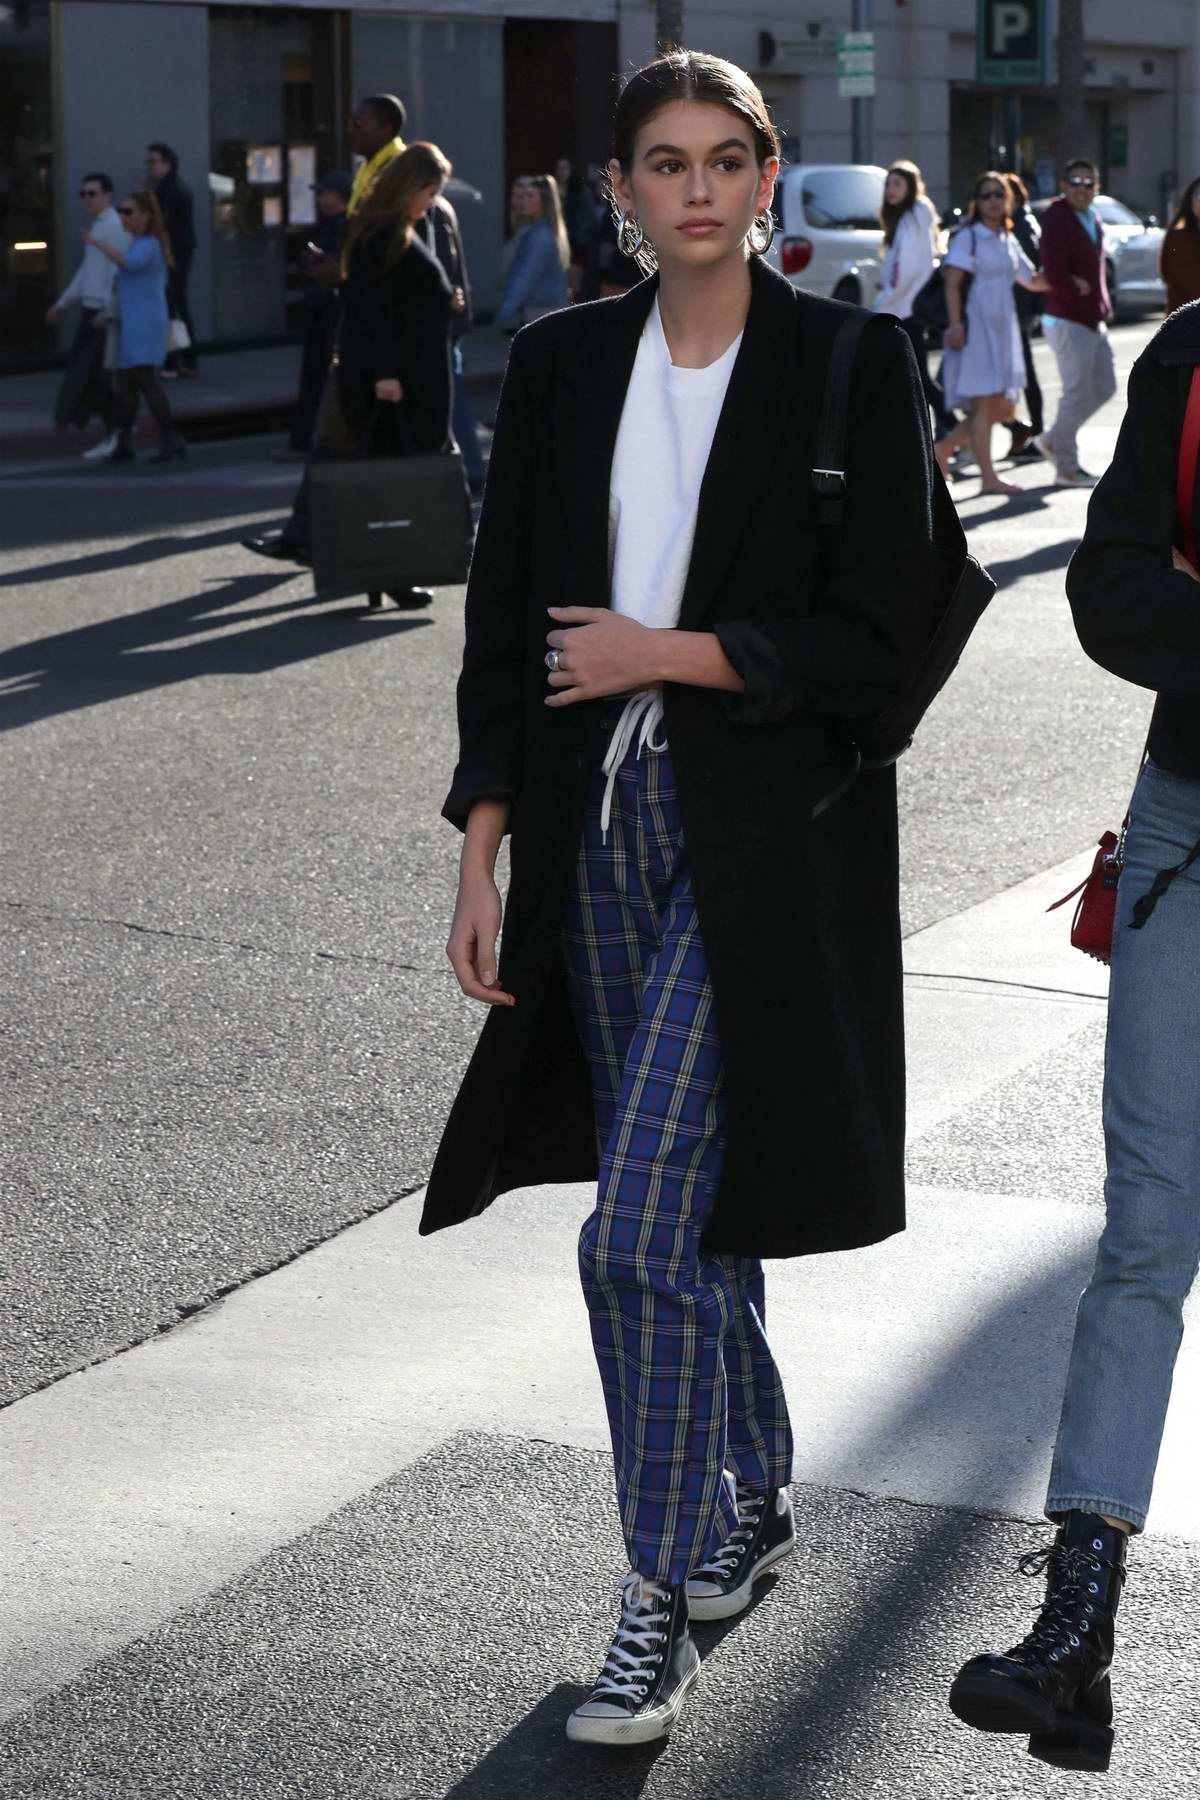 Kaia Gerber shows off her style while shopping in Beverly Hills, Los Angeles